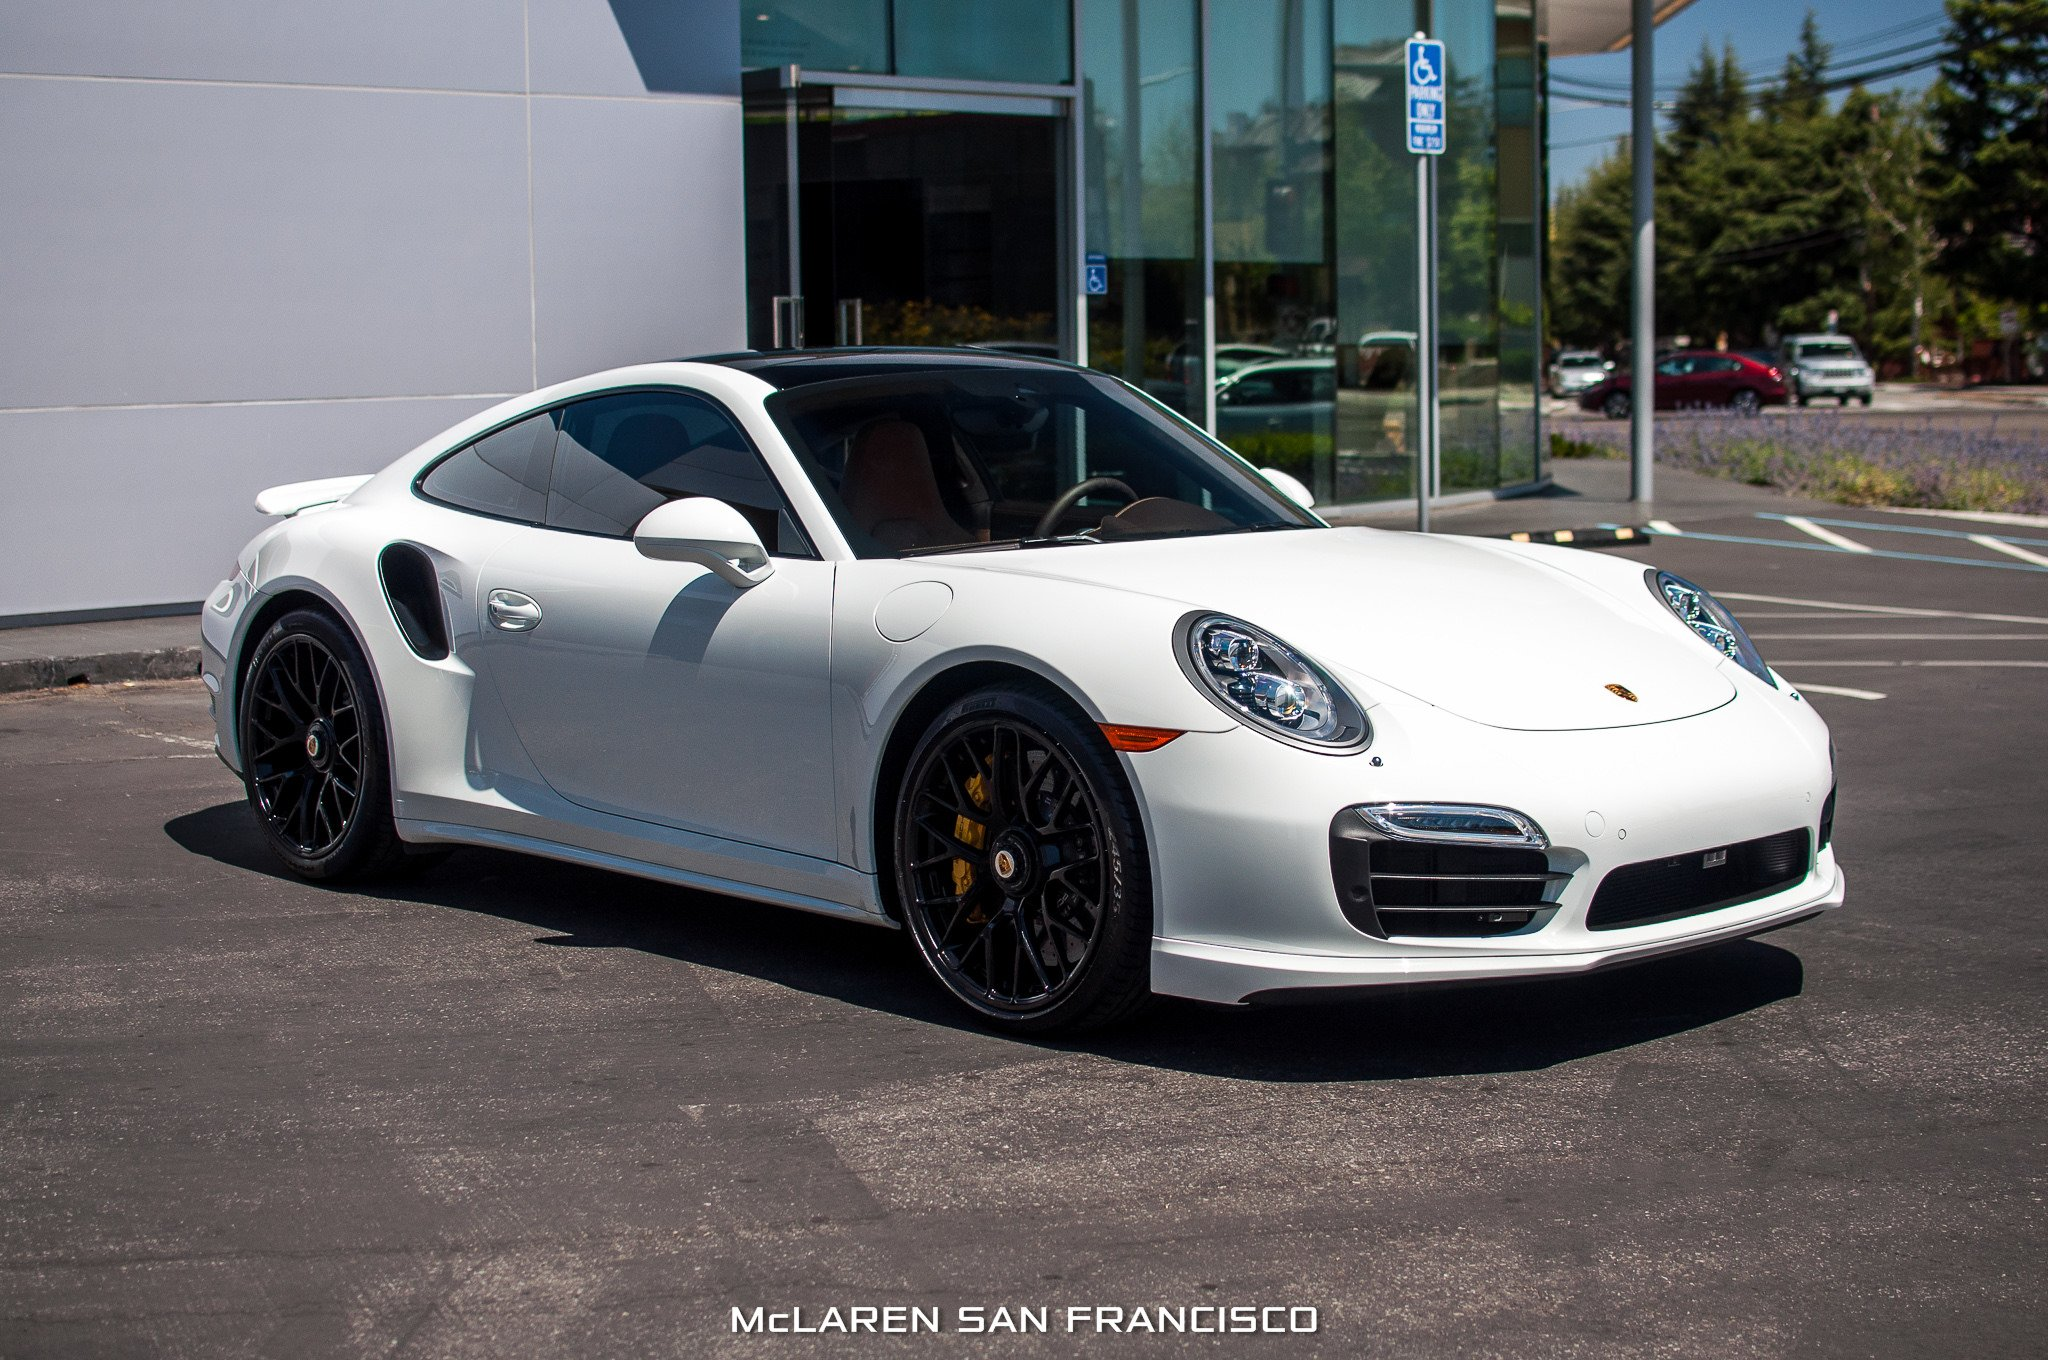 2015 porsche 911 turbo s coupe cars white wallpaper 2048x1360 686528 wallpaperup - 911 Porsche Turbo 2015